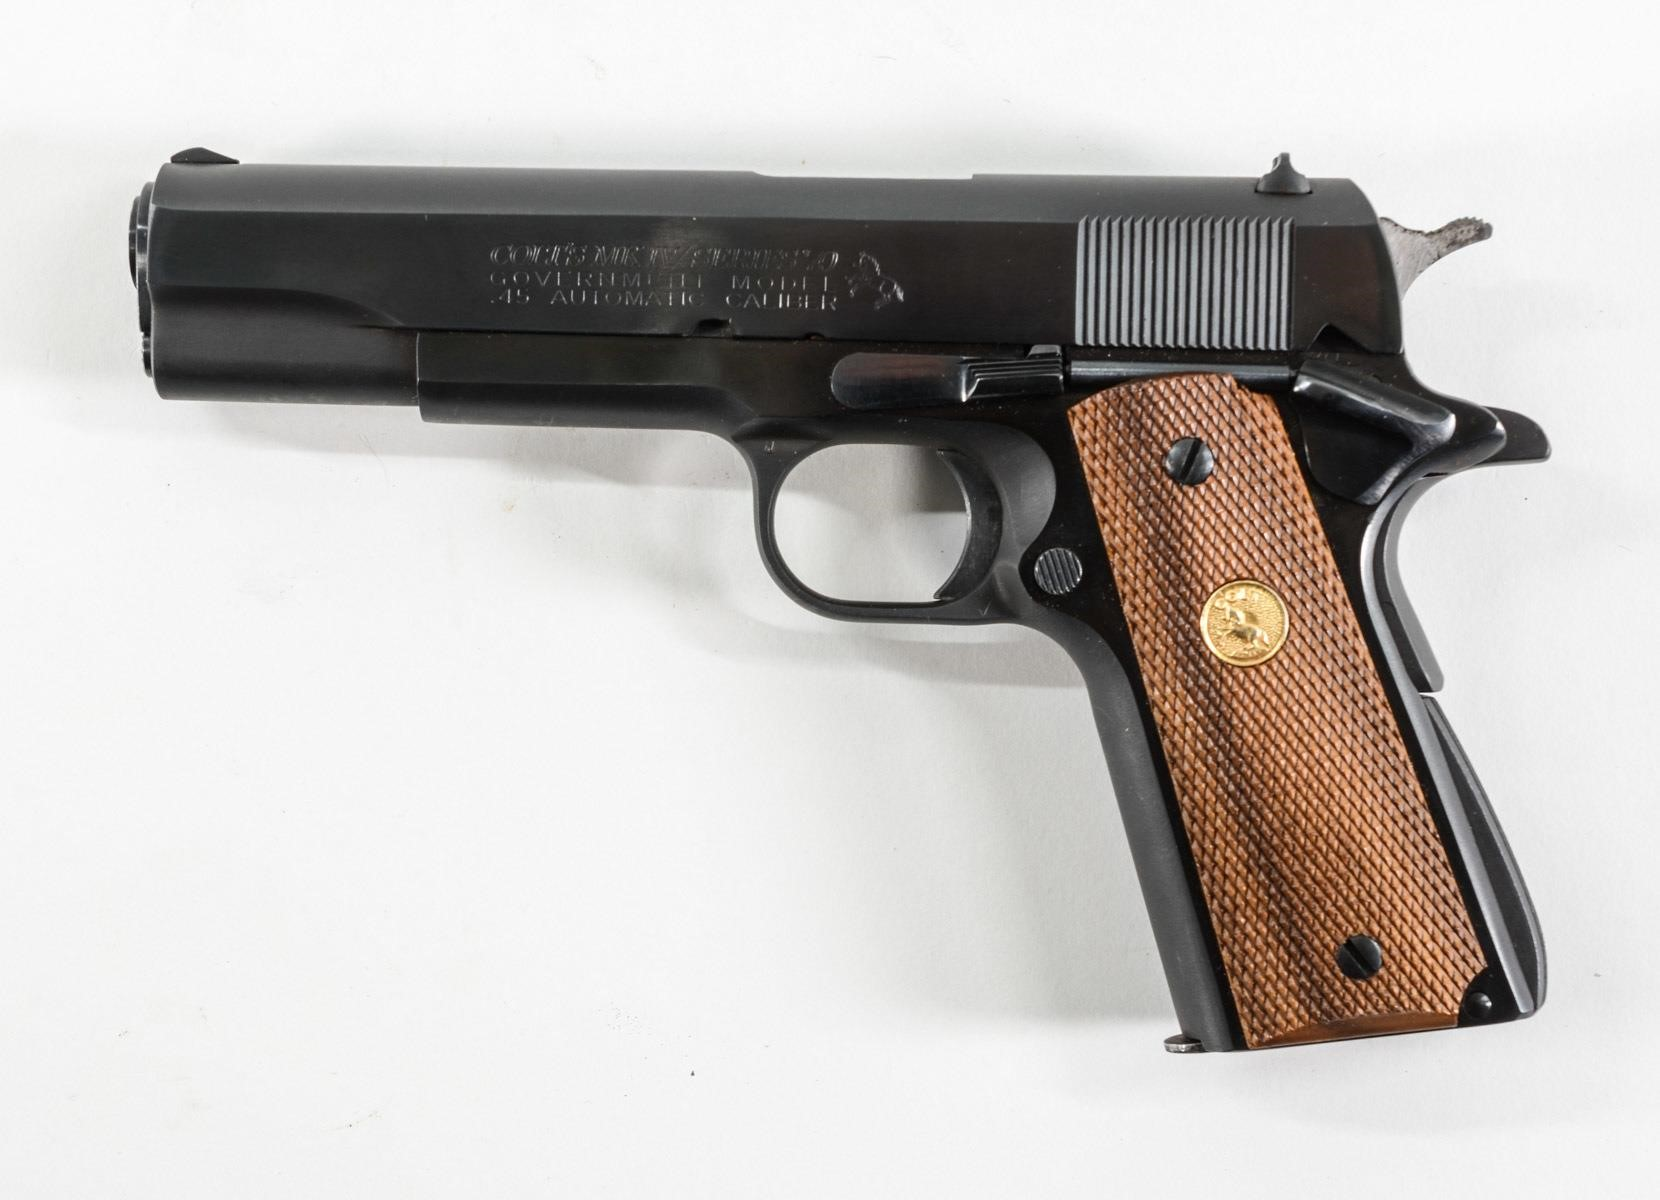 CT Firearms Auction - ONLINE ONLY